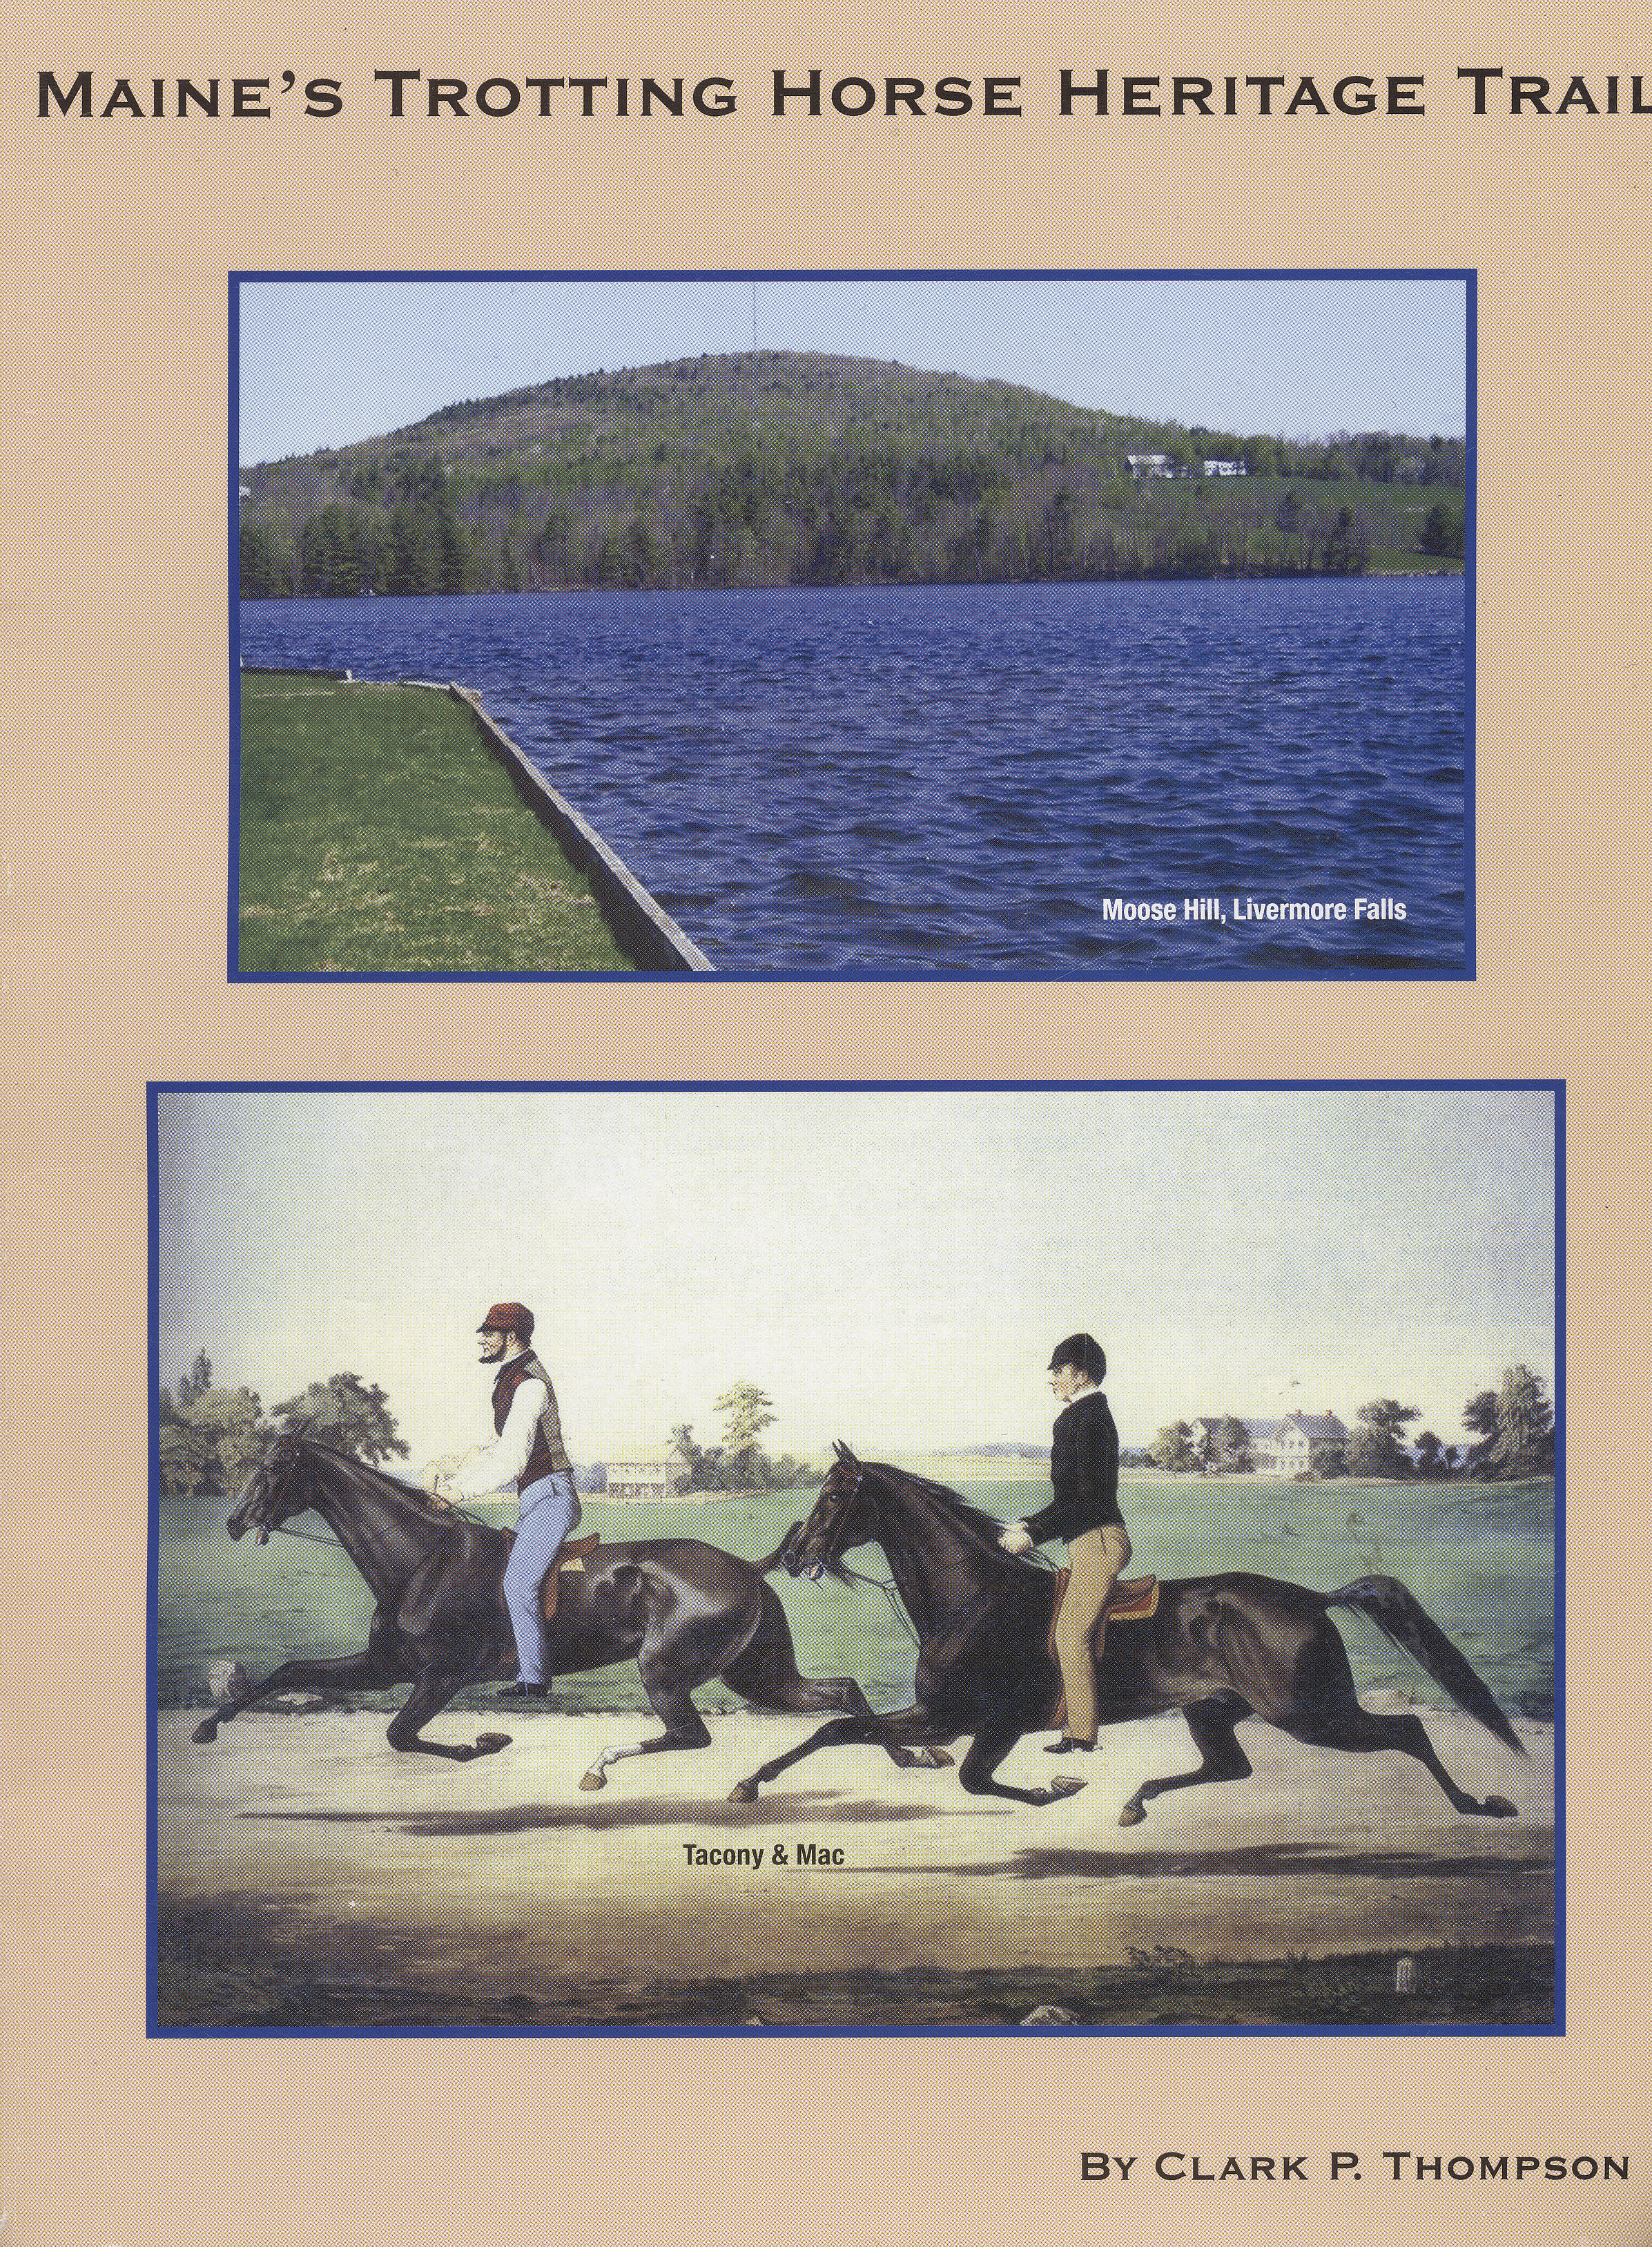 Maine's Cradle of the Trotter by Clark P. Thompson — All Rights Reserved — 2005